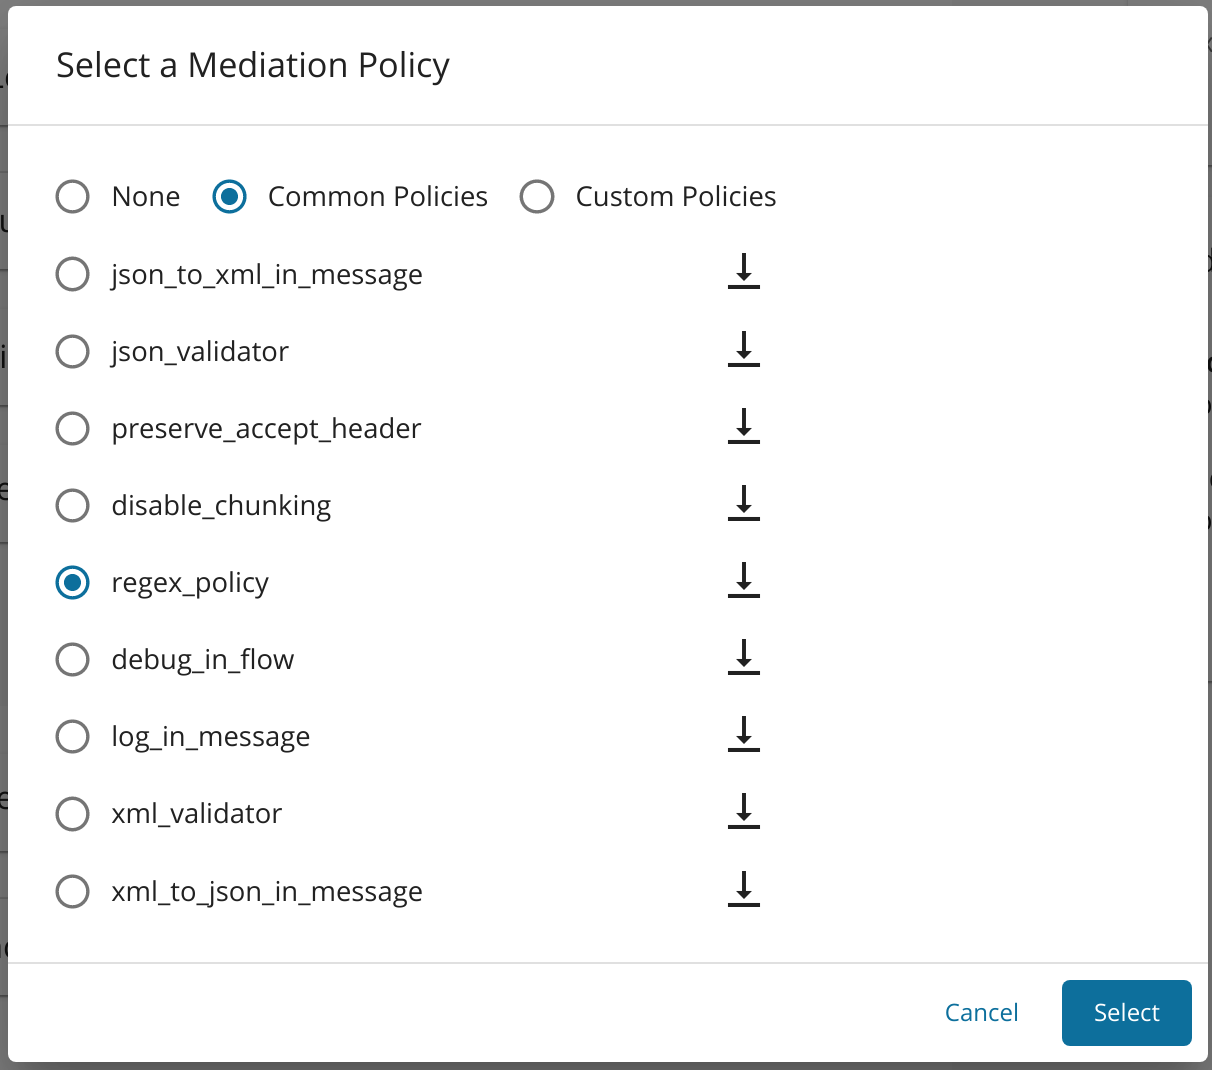 Select Regex policy from the drop-down menu